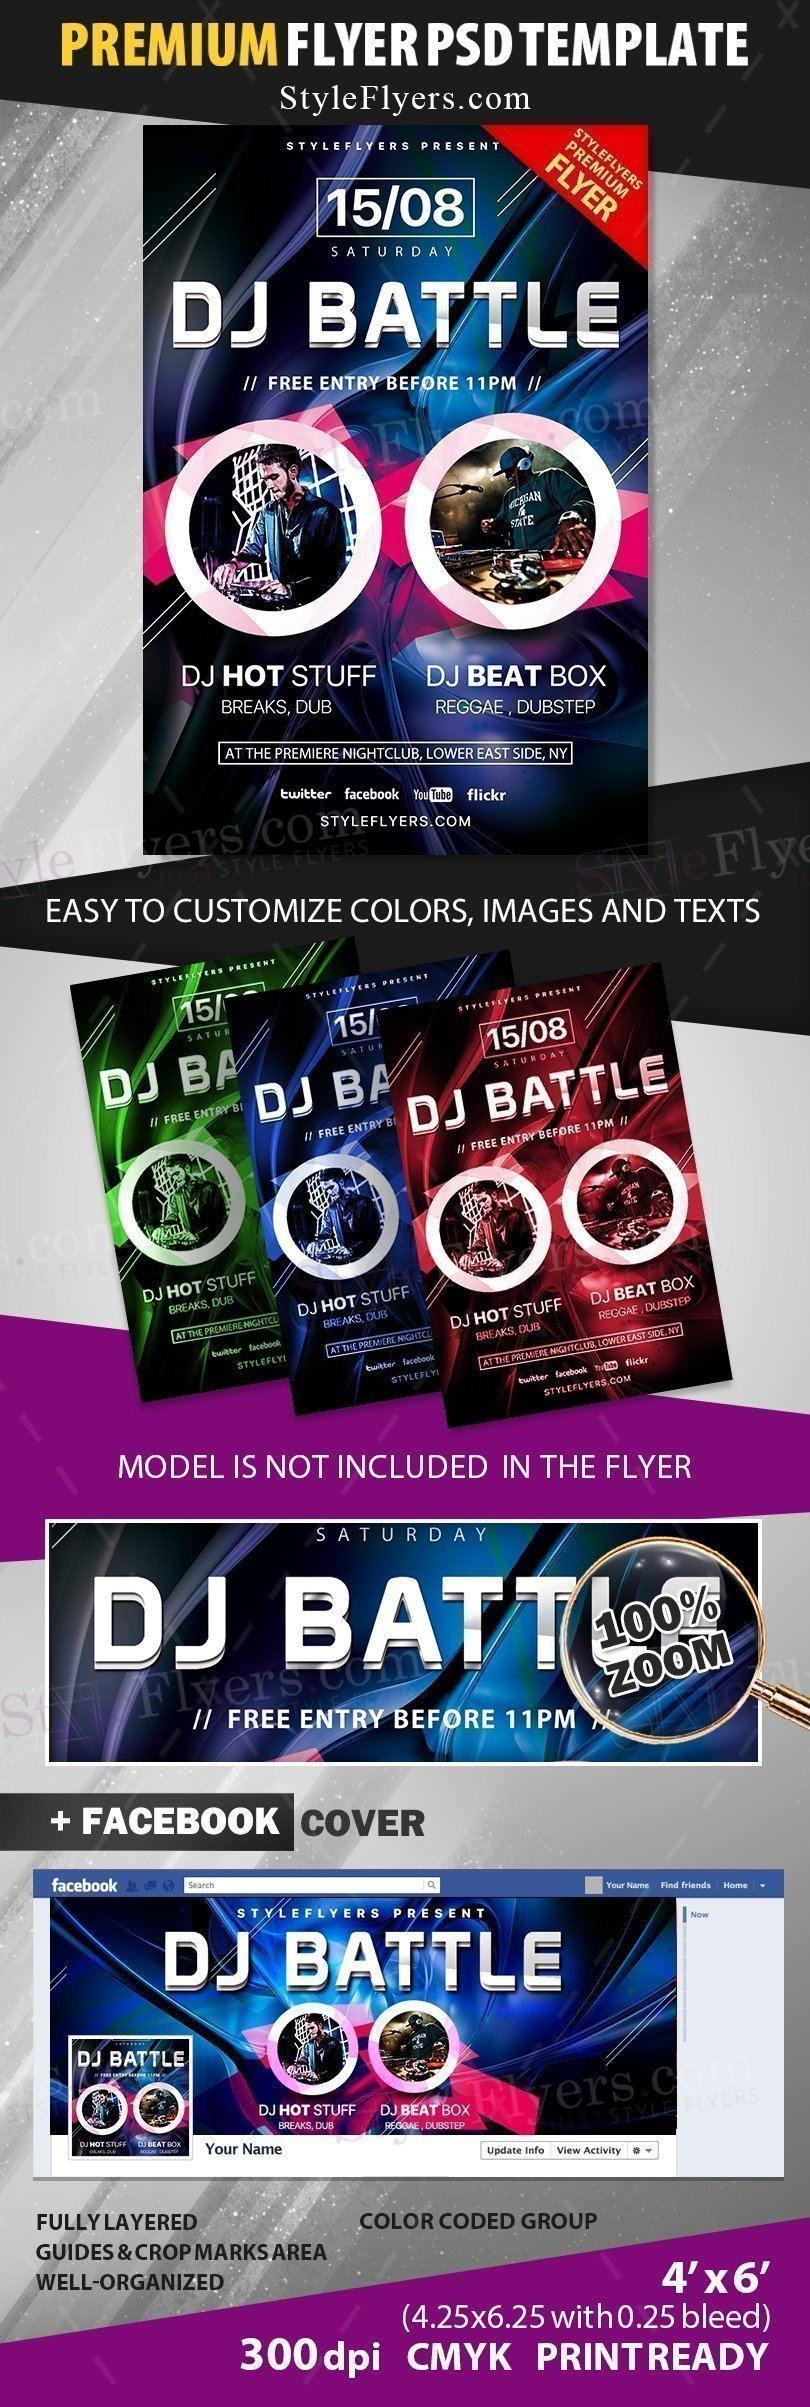 preview_dj-battle_psd_flyer